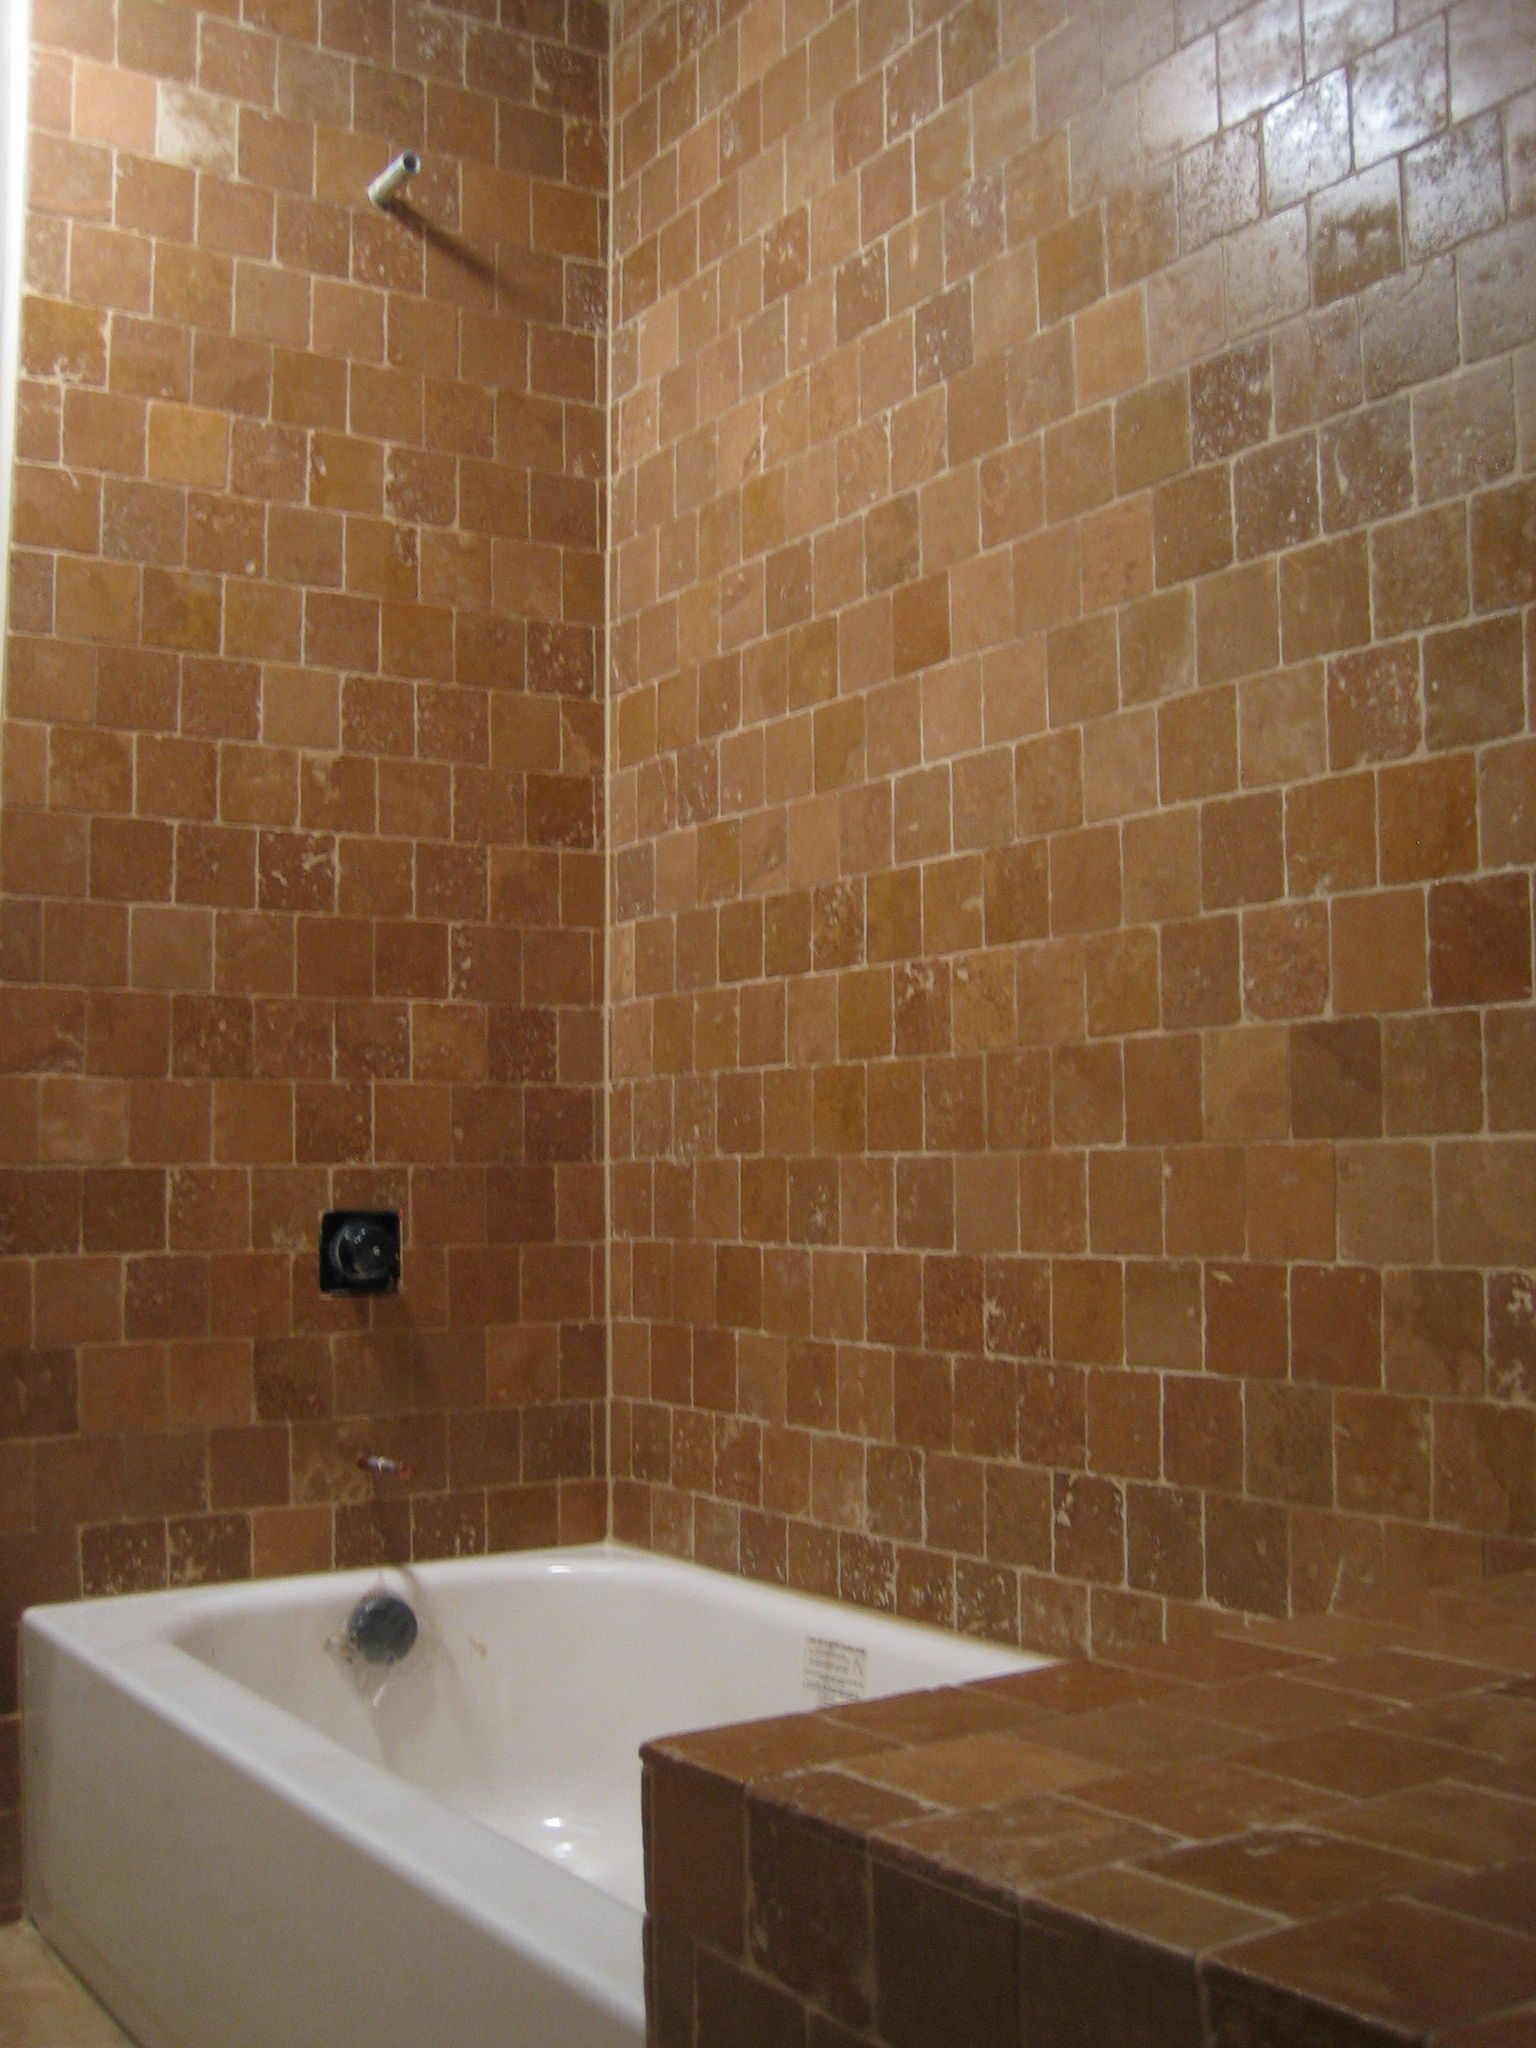 Tiled Tub Surround Pictures Bathtub Surrounds Ma Bathtub